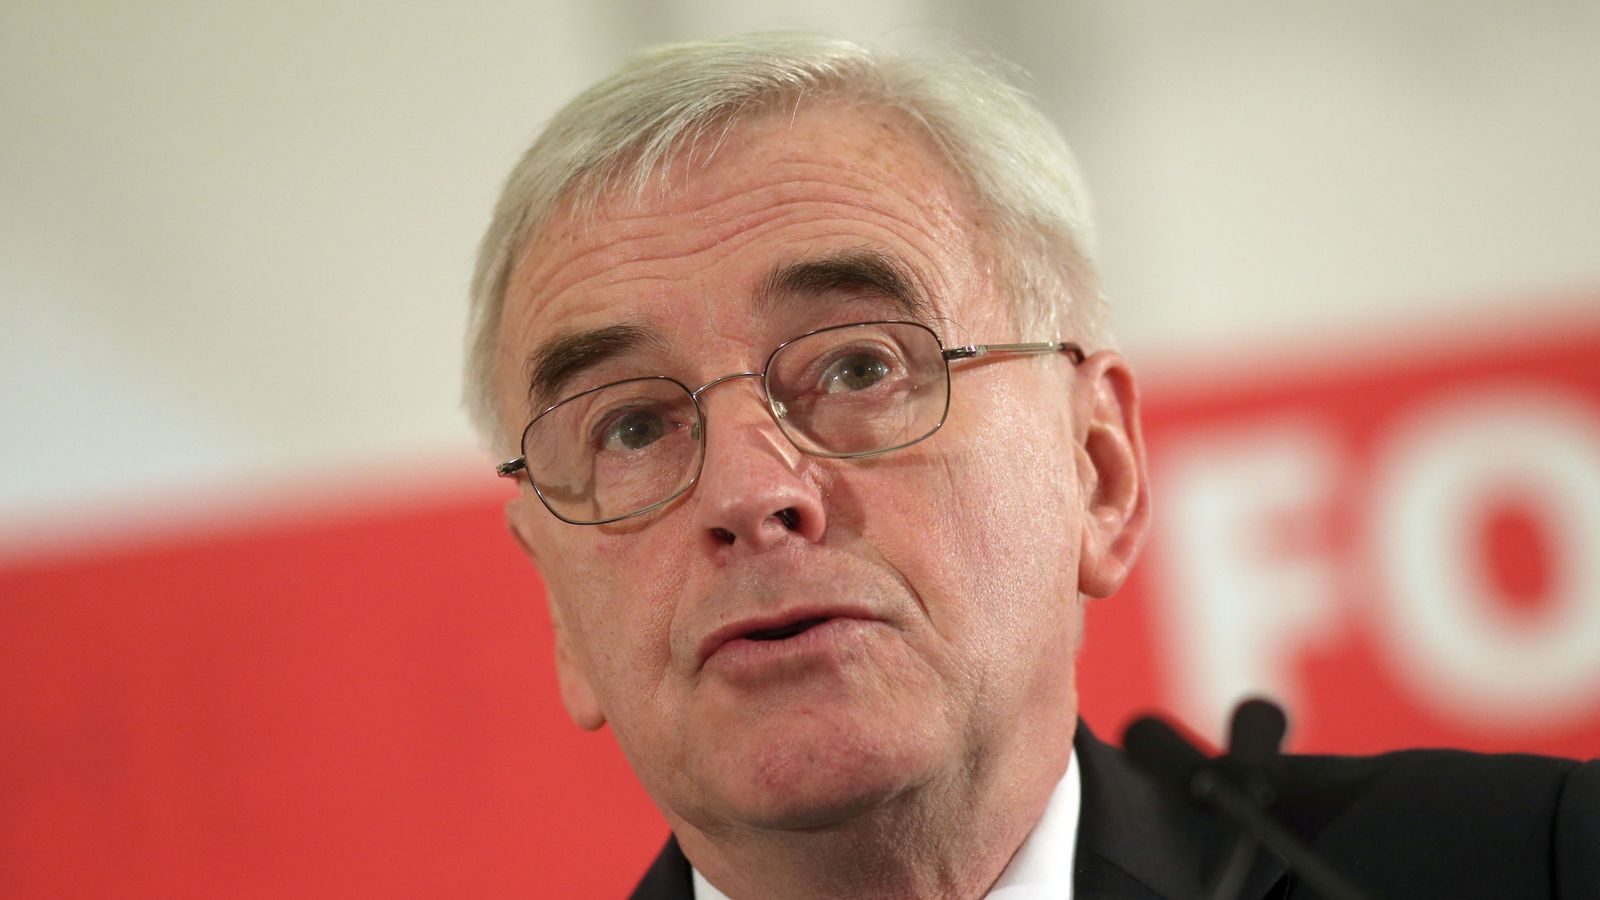 Staff will share ownership of firms under Labour plan